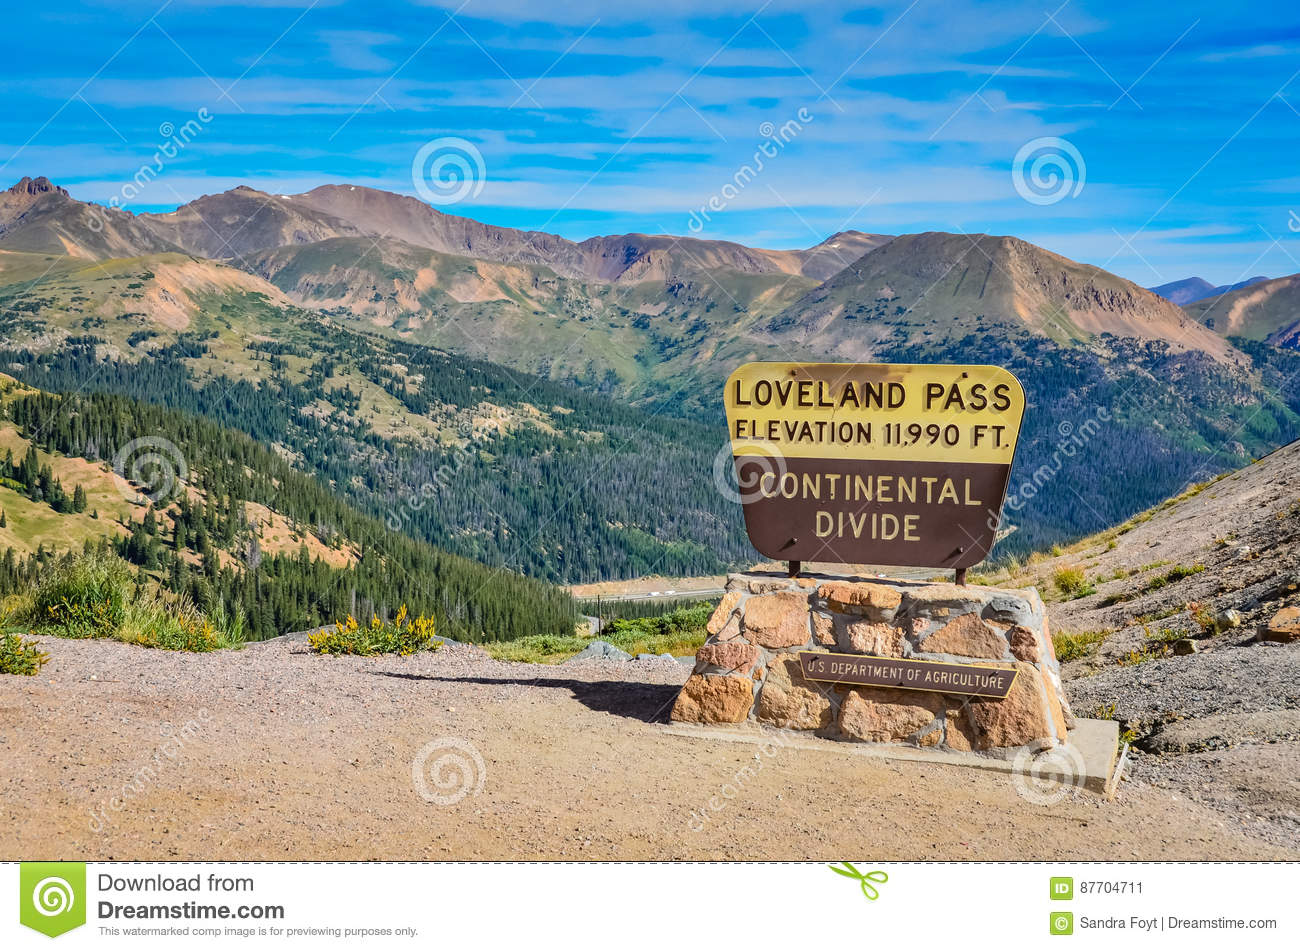 Passage de Loveland - le Colorado